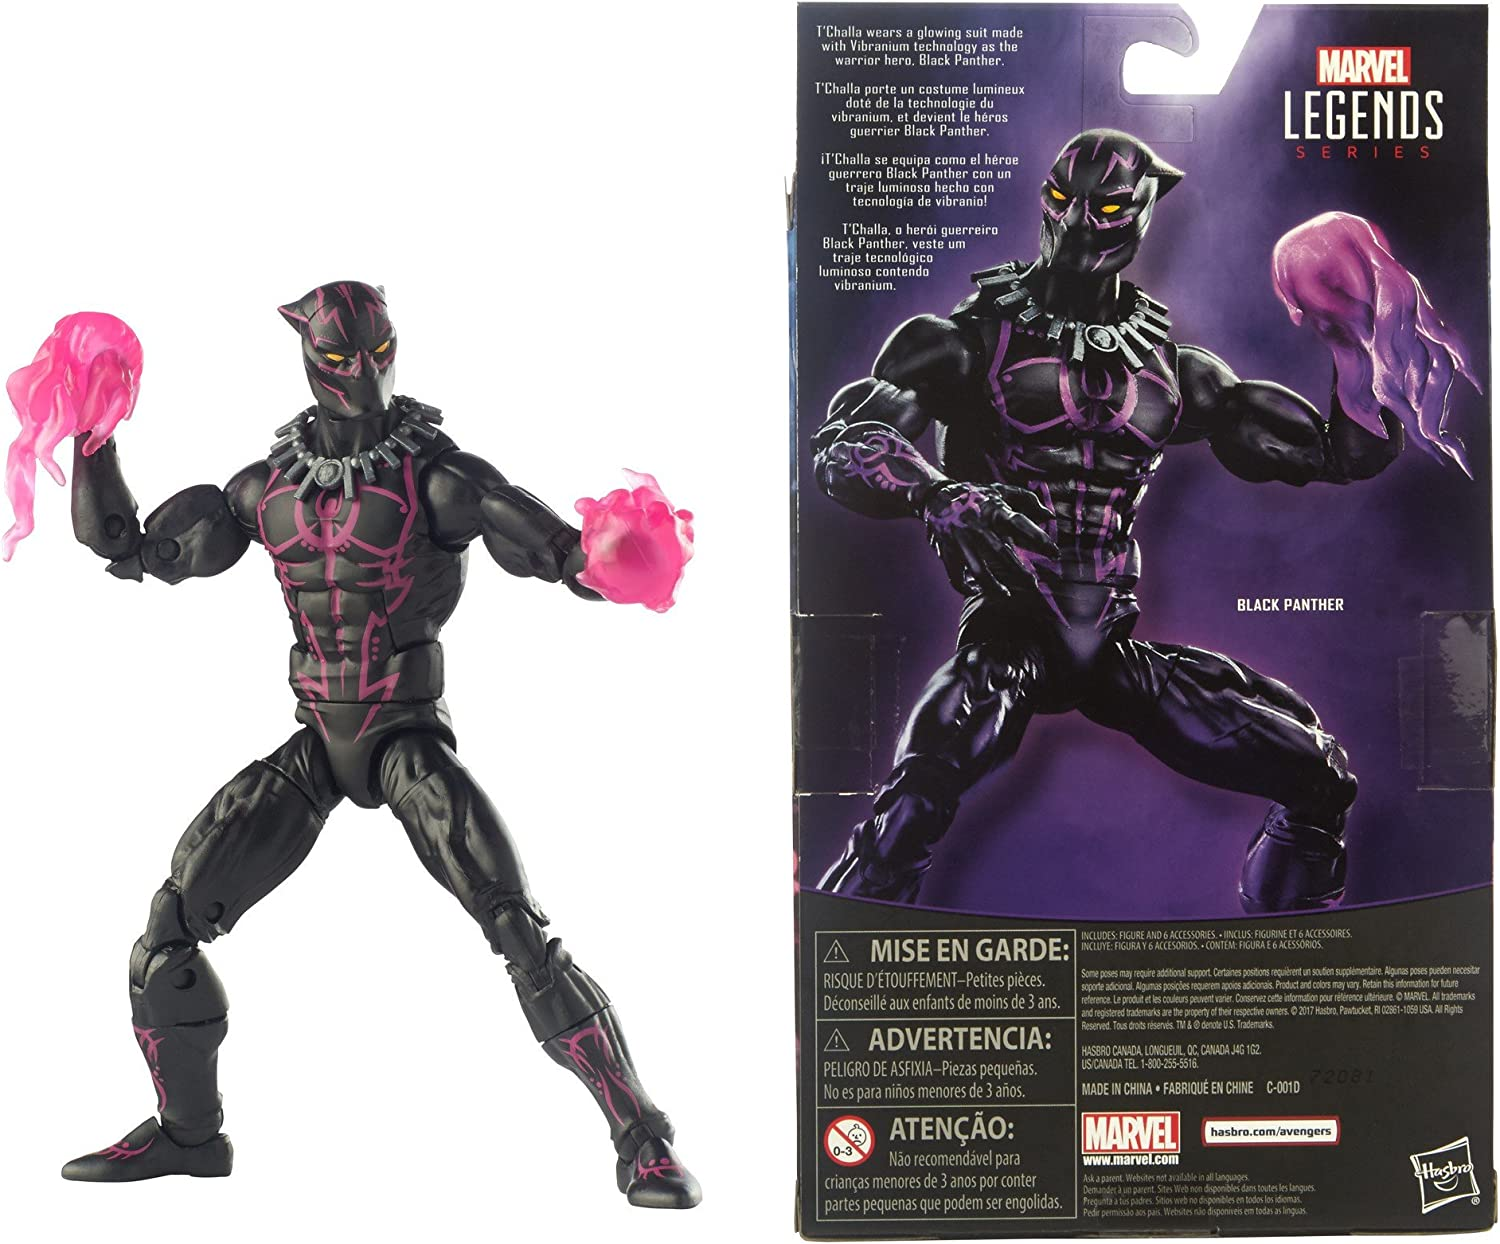 Marvel Legends 6-Inch Series Black Panther Exclusive Action Figure